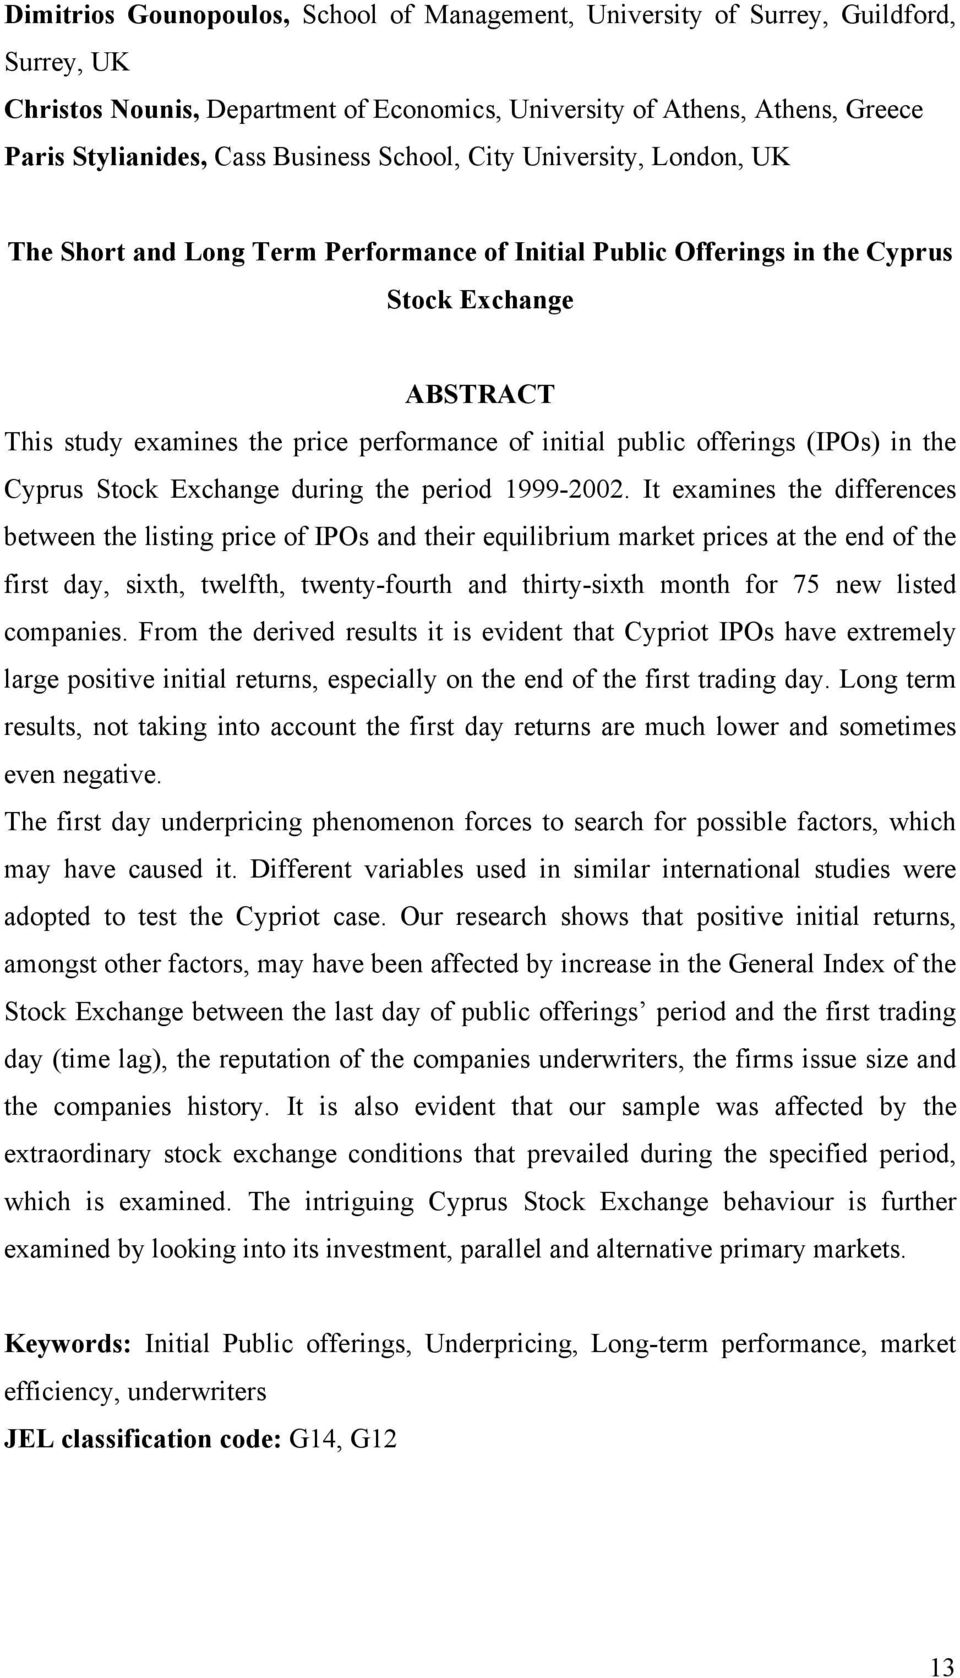 offerings (IPOs) in the Cyprus Stock Exchange during the period 1999-2002.